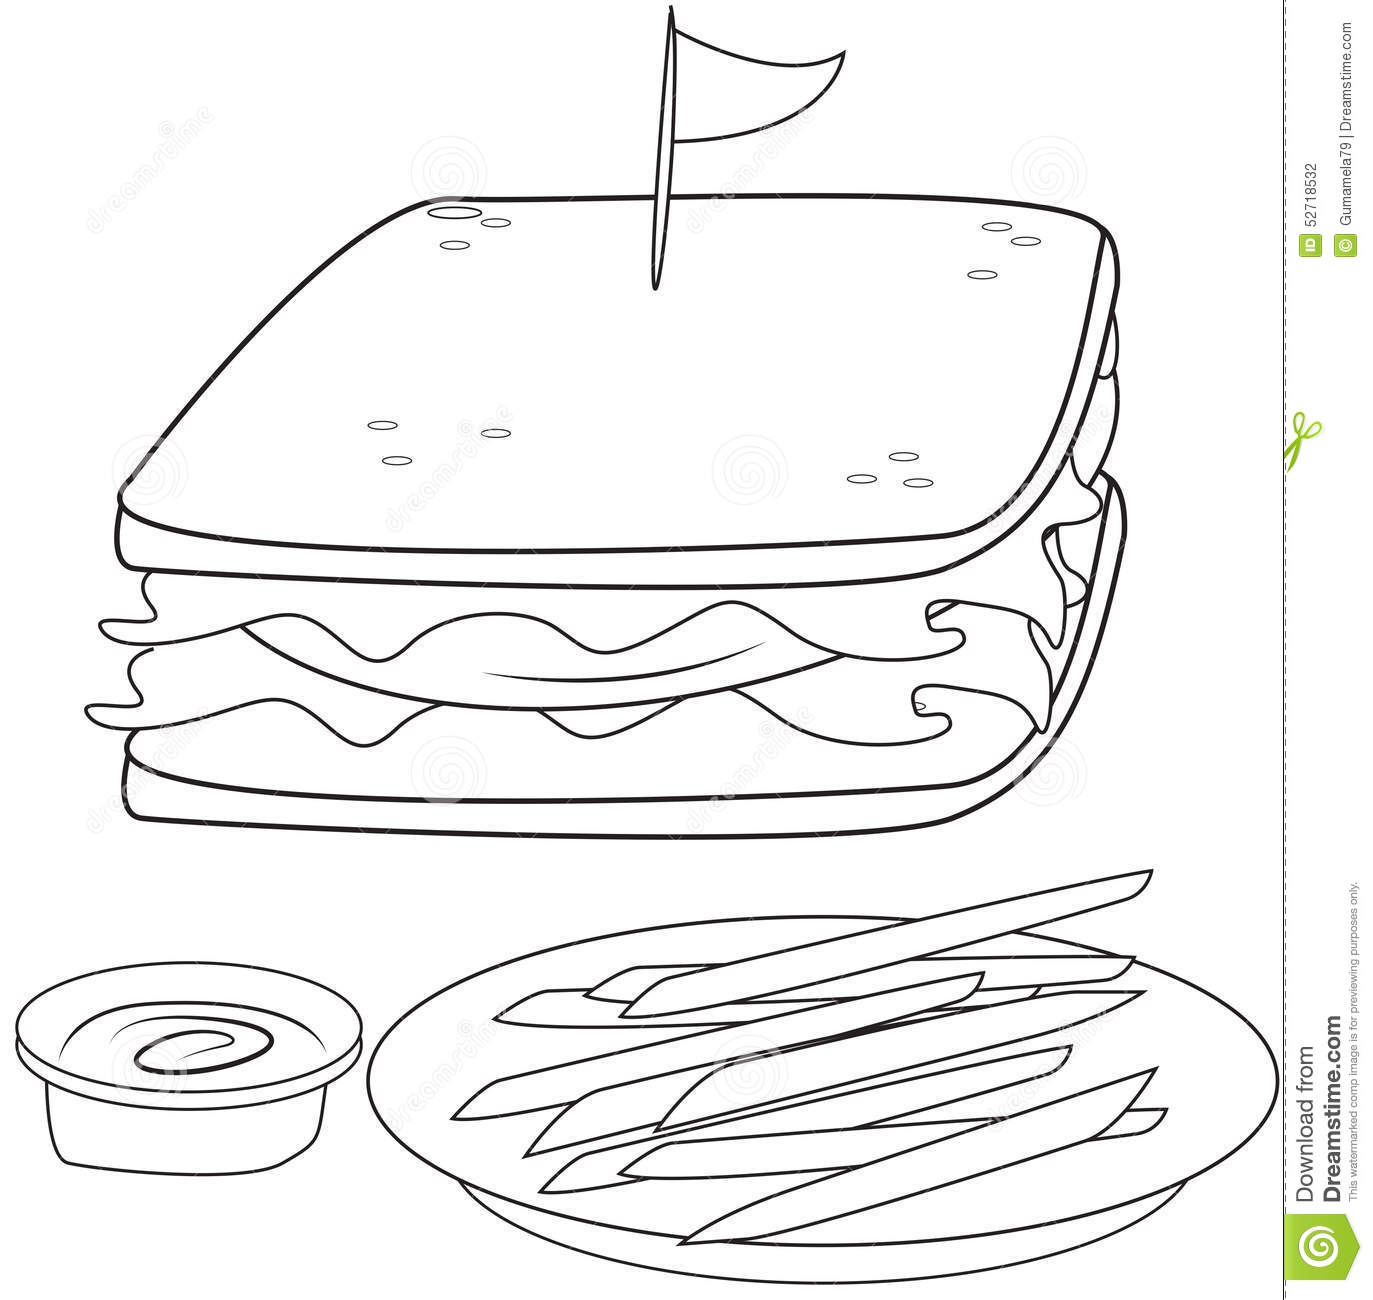 Clip Art Sandwich Coloring Pages sandwich and fries coloring page stock illustration image 52718532 page